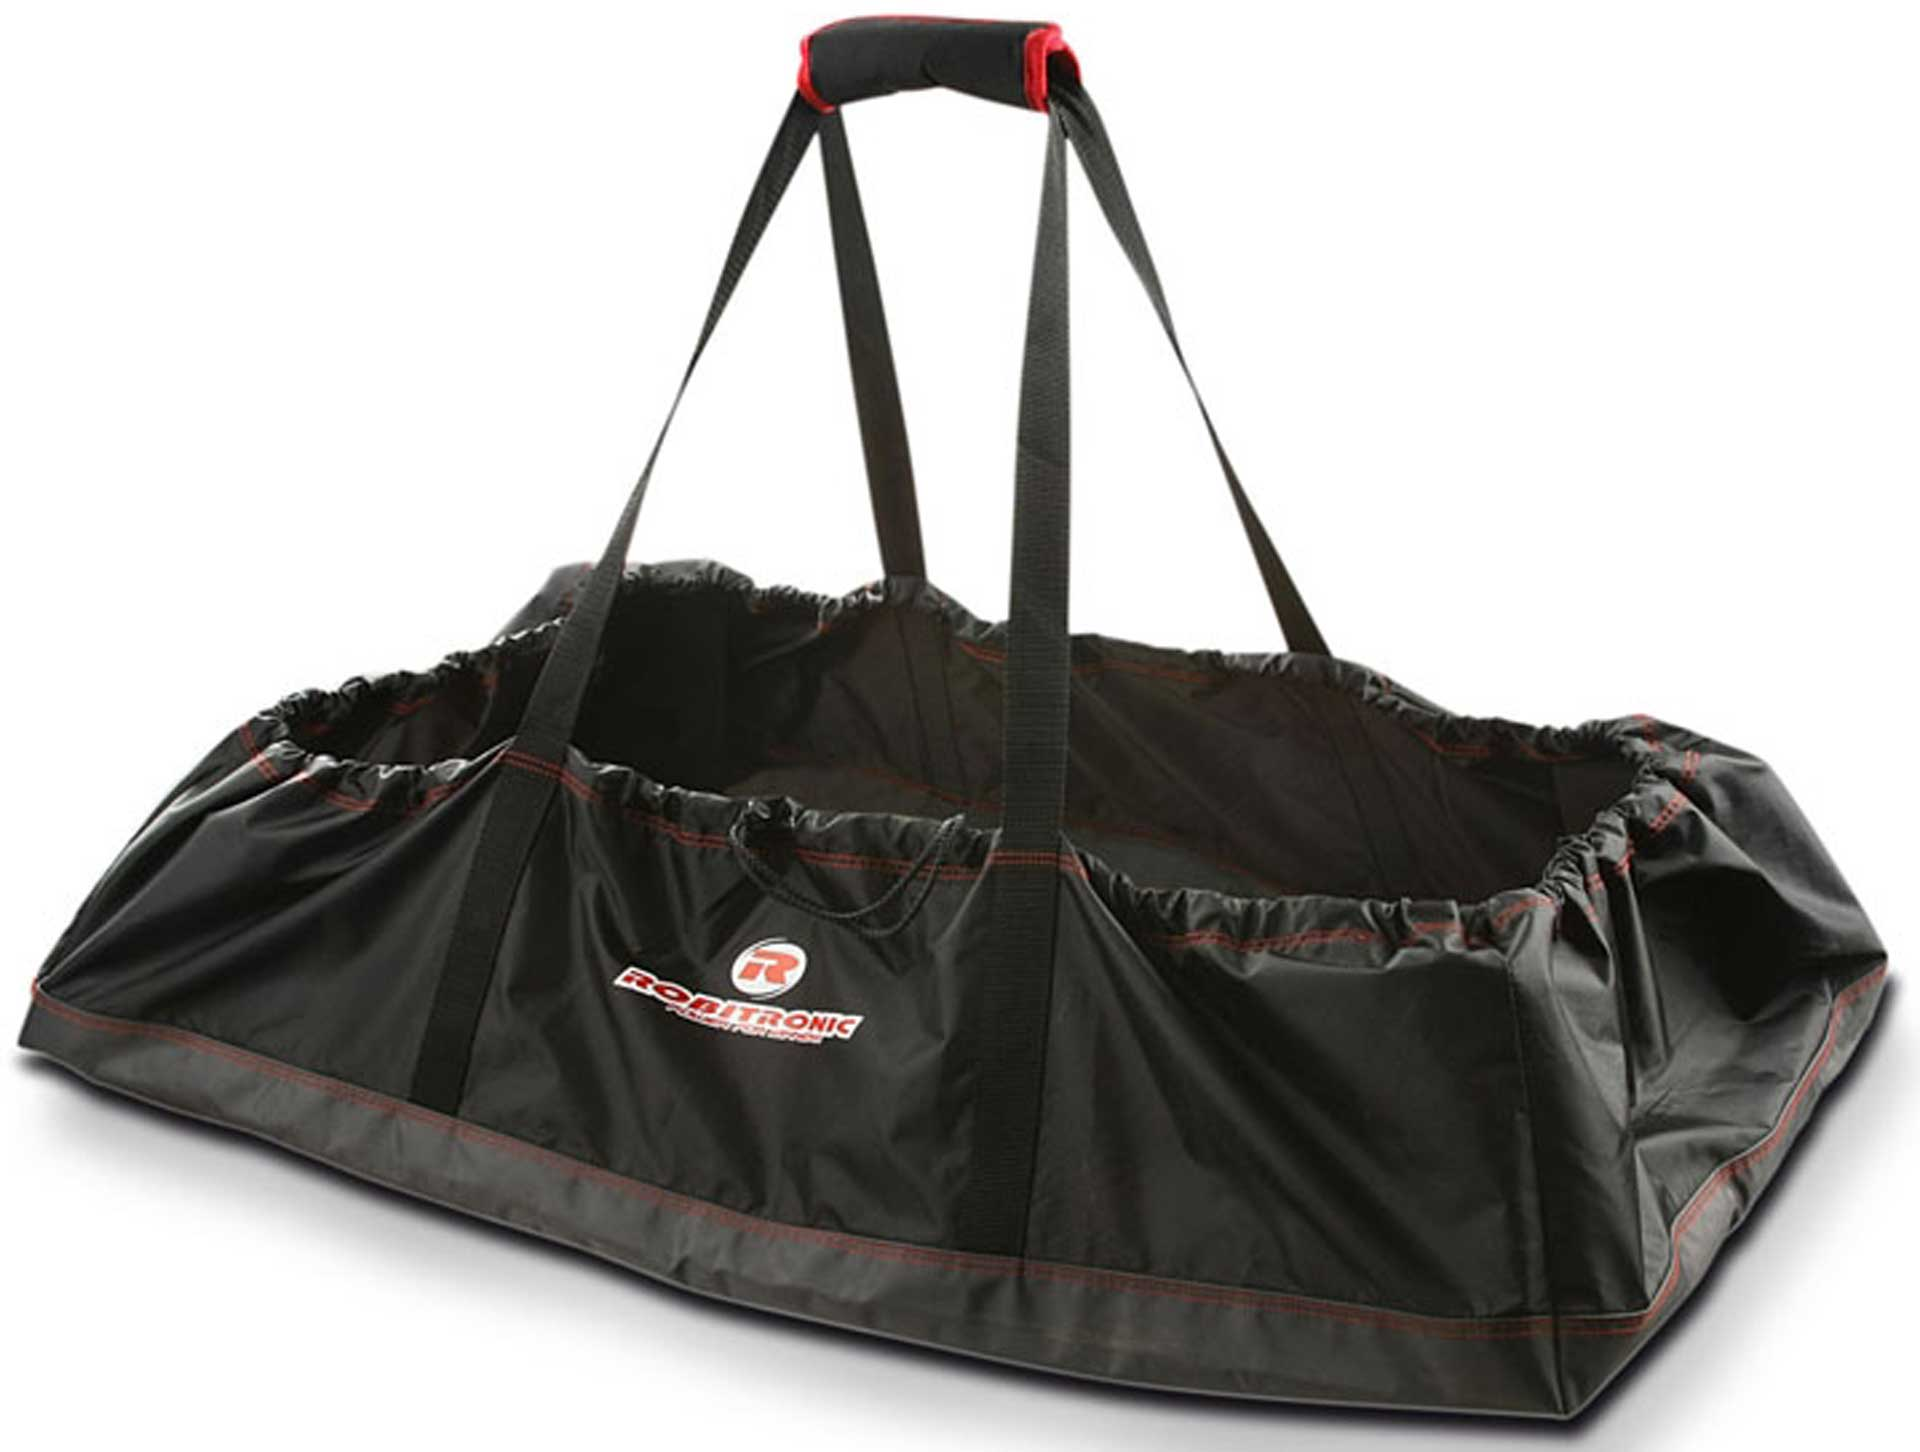 ROBITRONIC Dirtbag carrying bag for 1/5 and 1/6 Big Scale